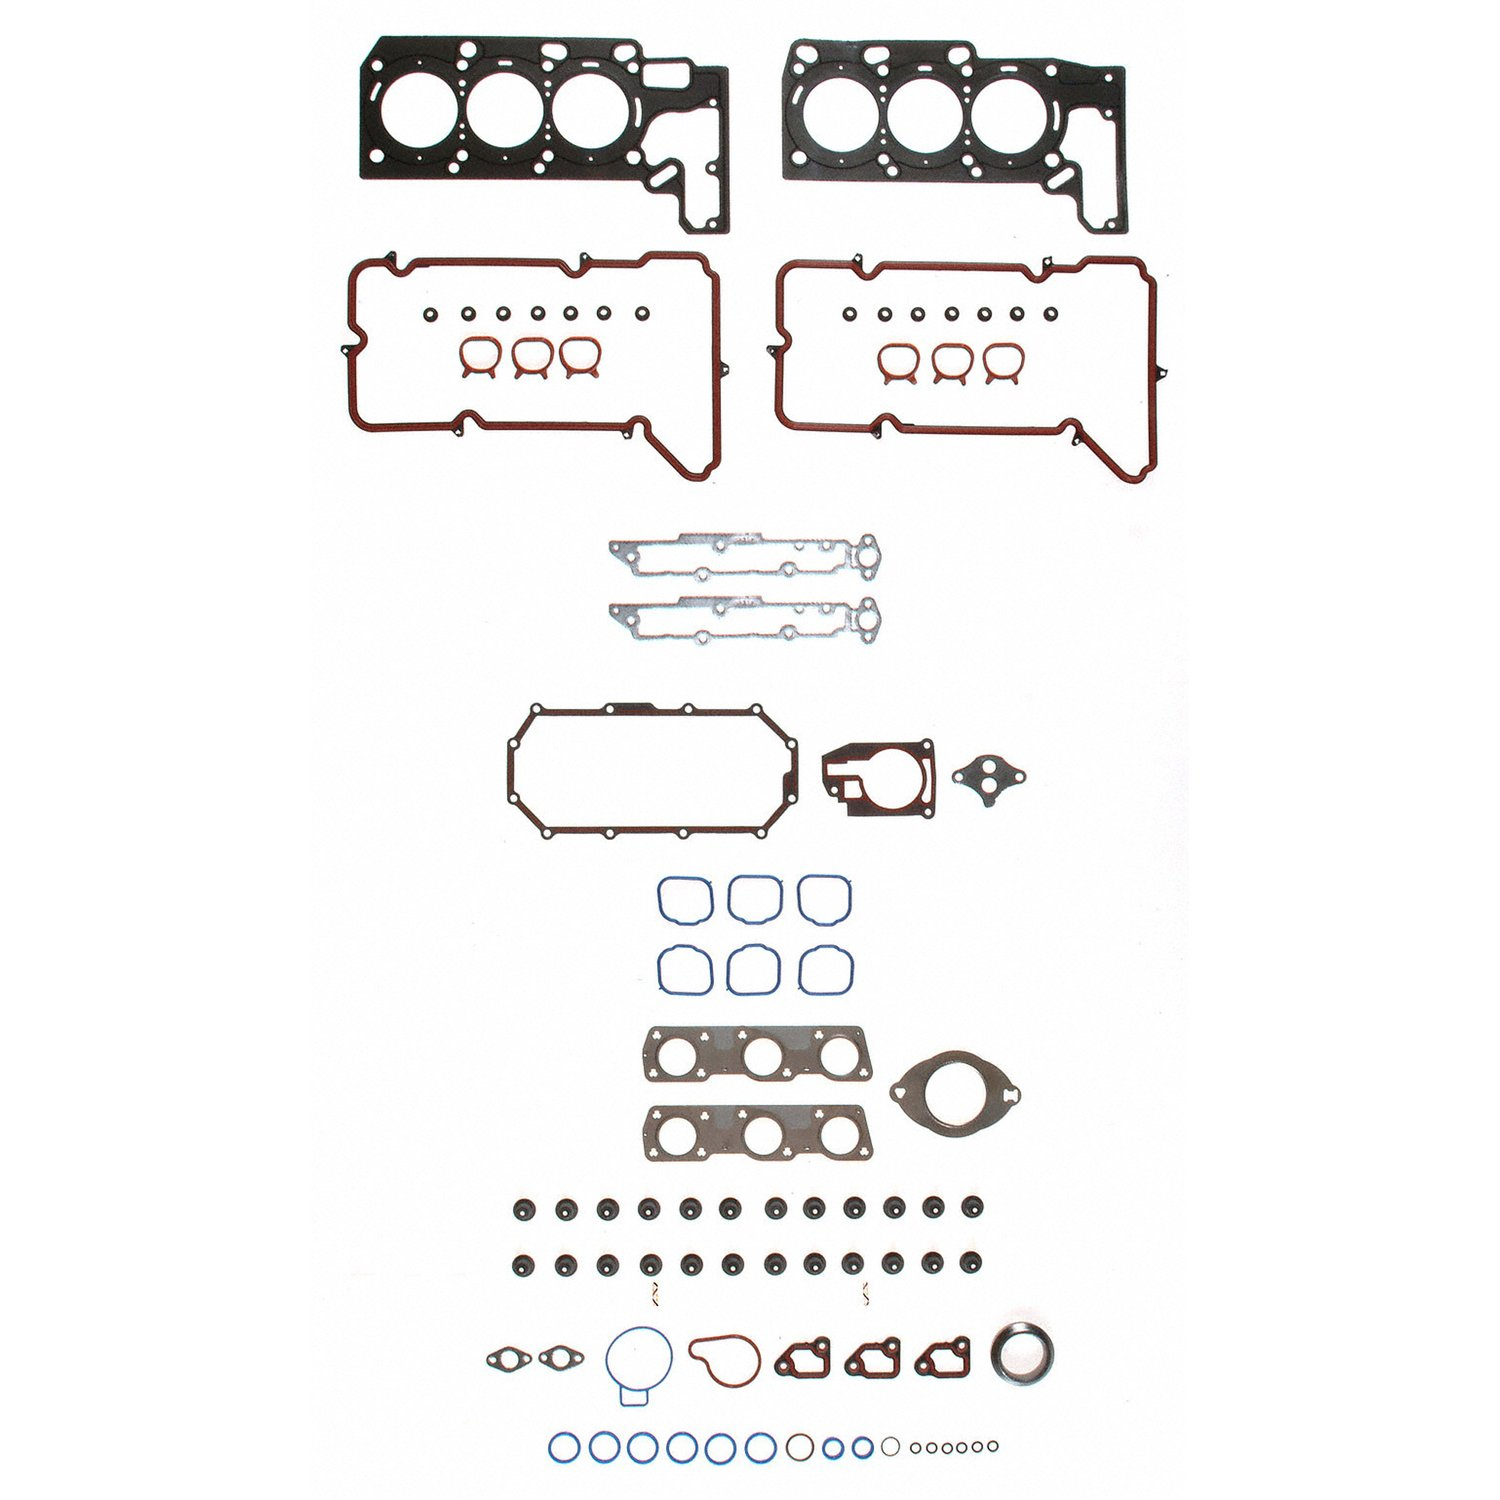 2001 Oldsmobile Aurora Engine Cylinder Head Gasket Set FP HS 26230 PT-1